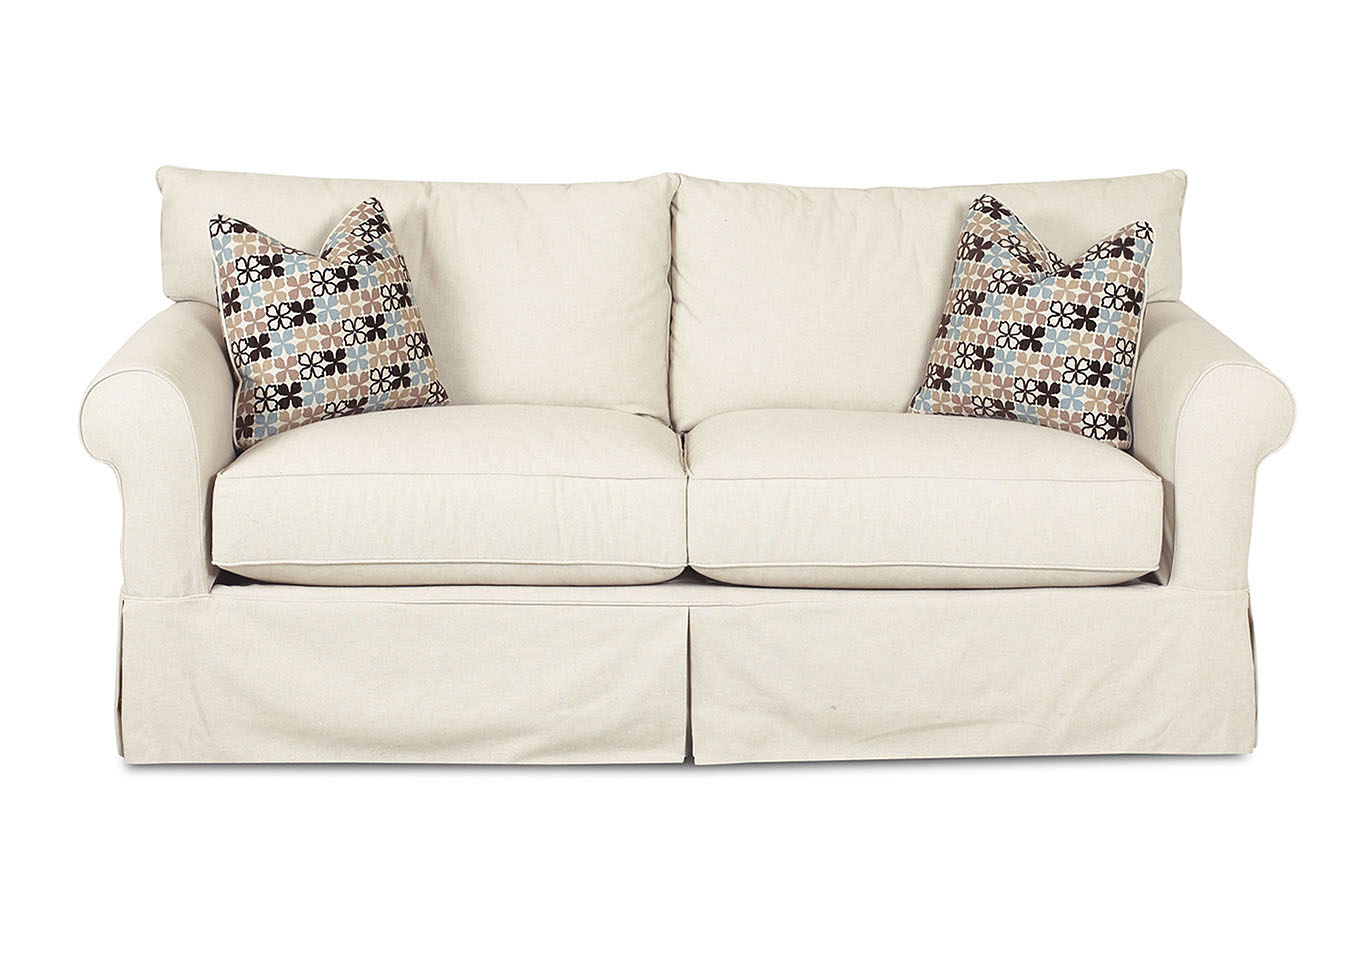 Jenny Beige Stationary Fabric Sofa,Klaussner Home Furnishings